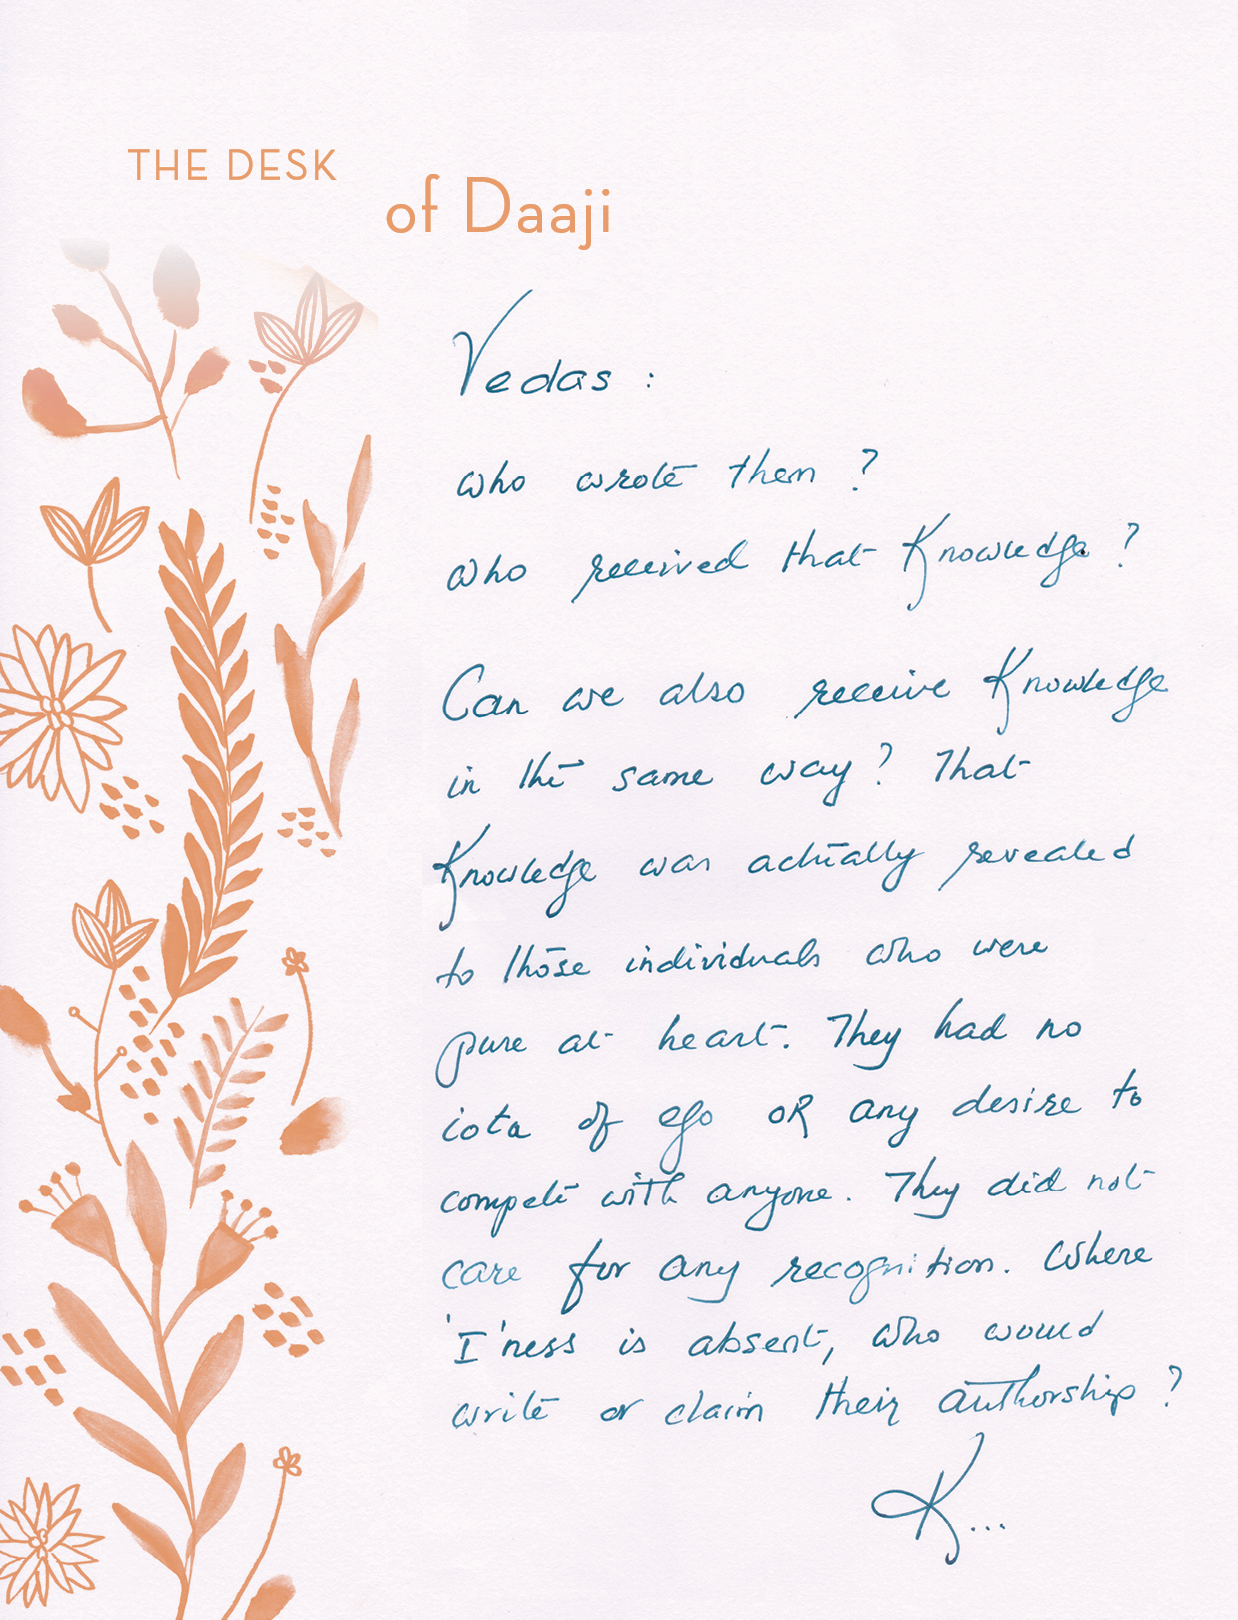 Vedas – The desk of Daaji